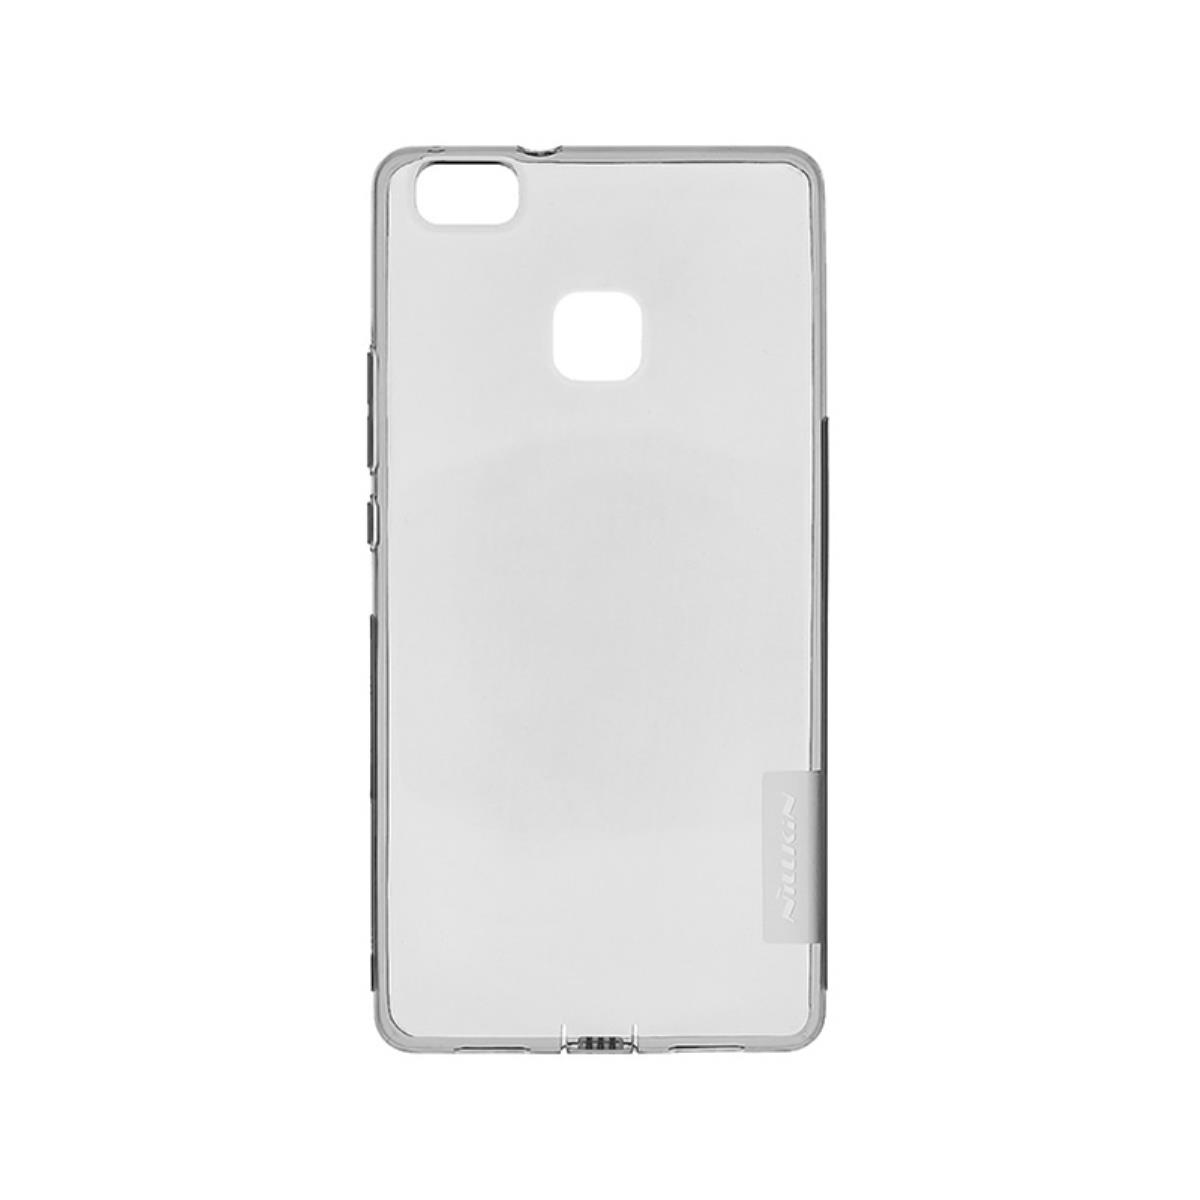 Capa Silicone Nillkin Huawei P9 Lite Transparente Escura Super Frosted Back Cover Gold For Y5 Ii